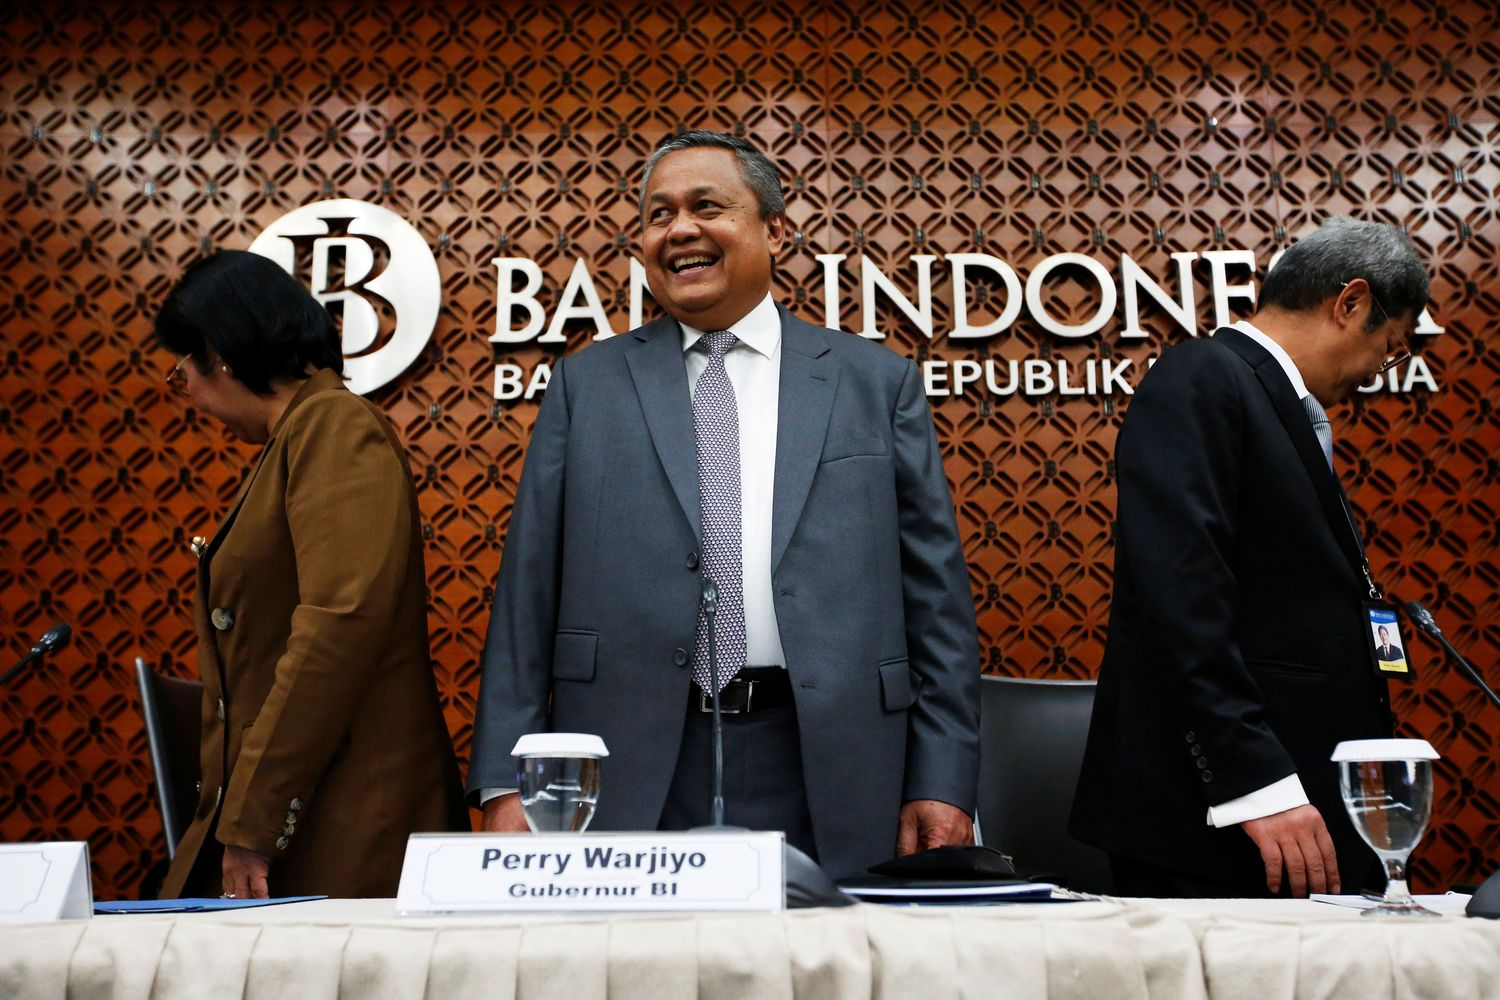 Indonesia's central bank governor Perry Warjiyo and his deputies arrive to a media briefing at the bank's headquarters in Jakarta on Thursday. (Reuters photo)